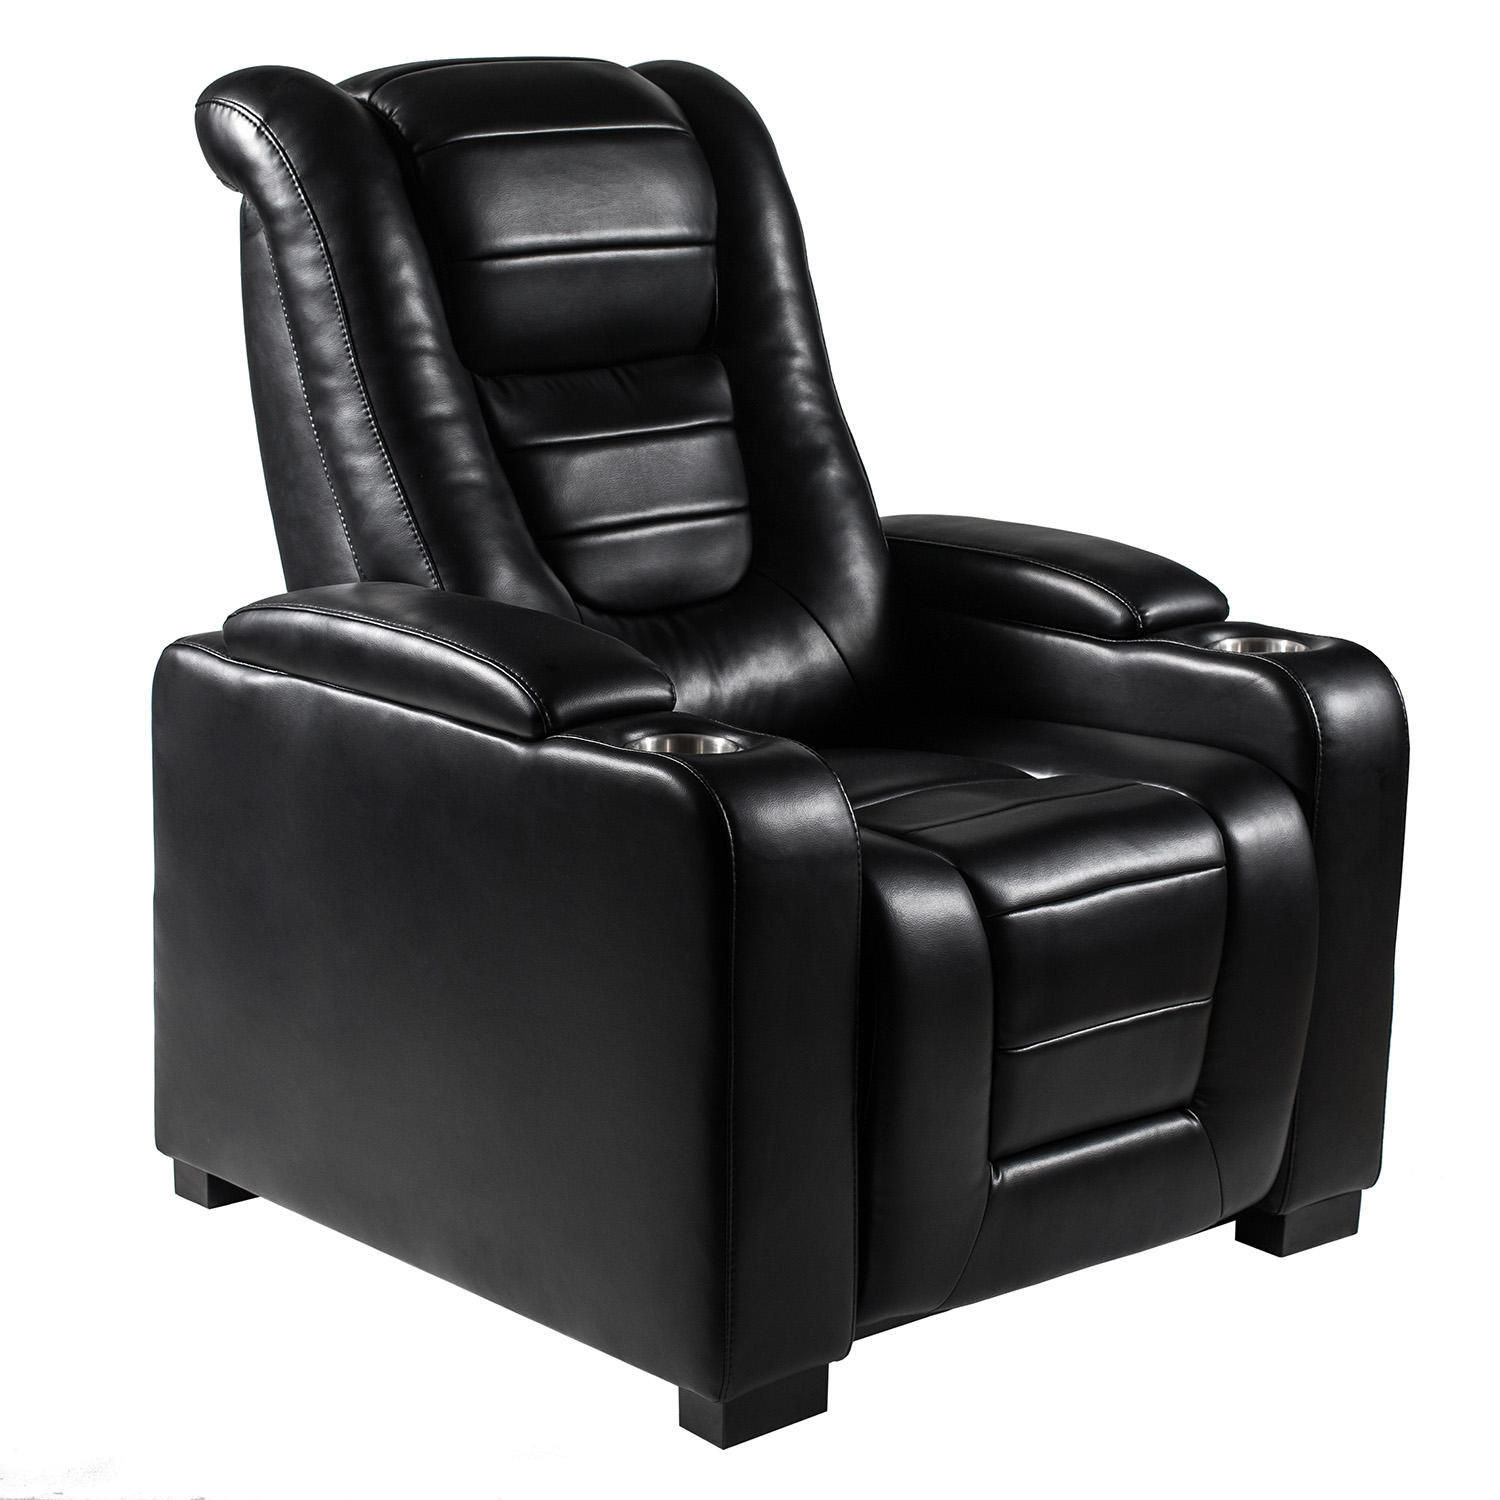 Park Hill Myles Power Theater Recliner with Adjustable Headrest